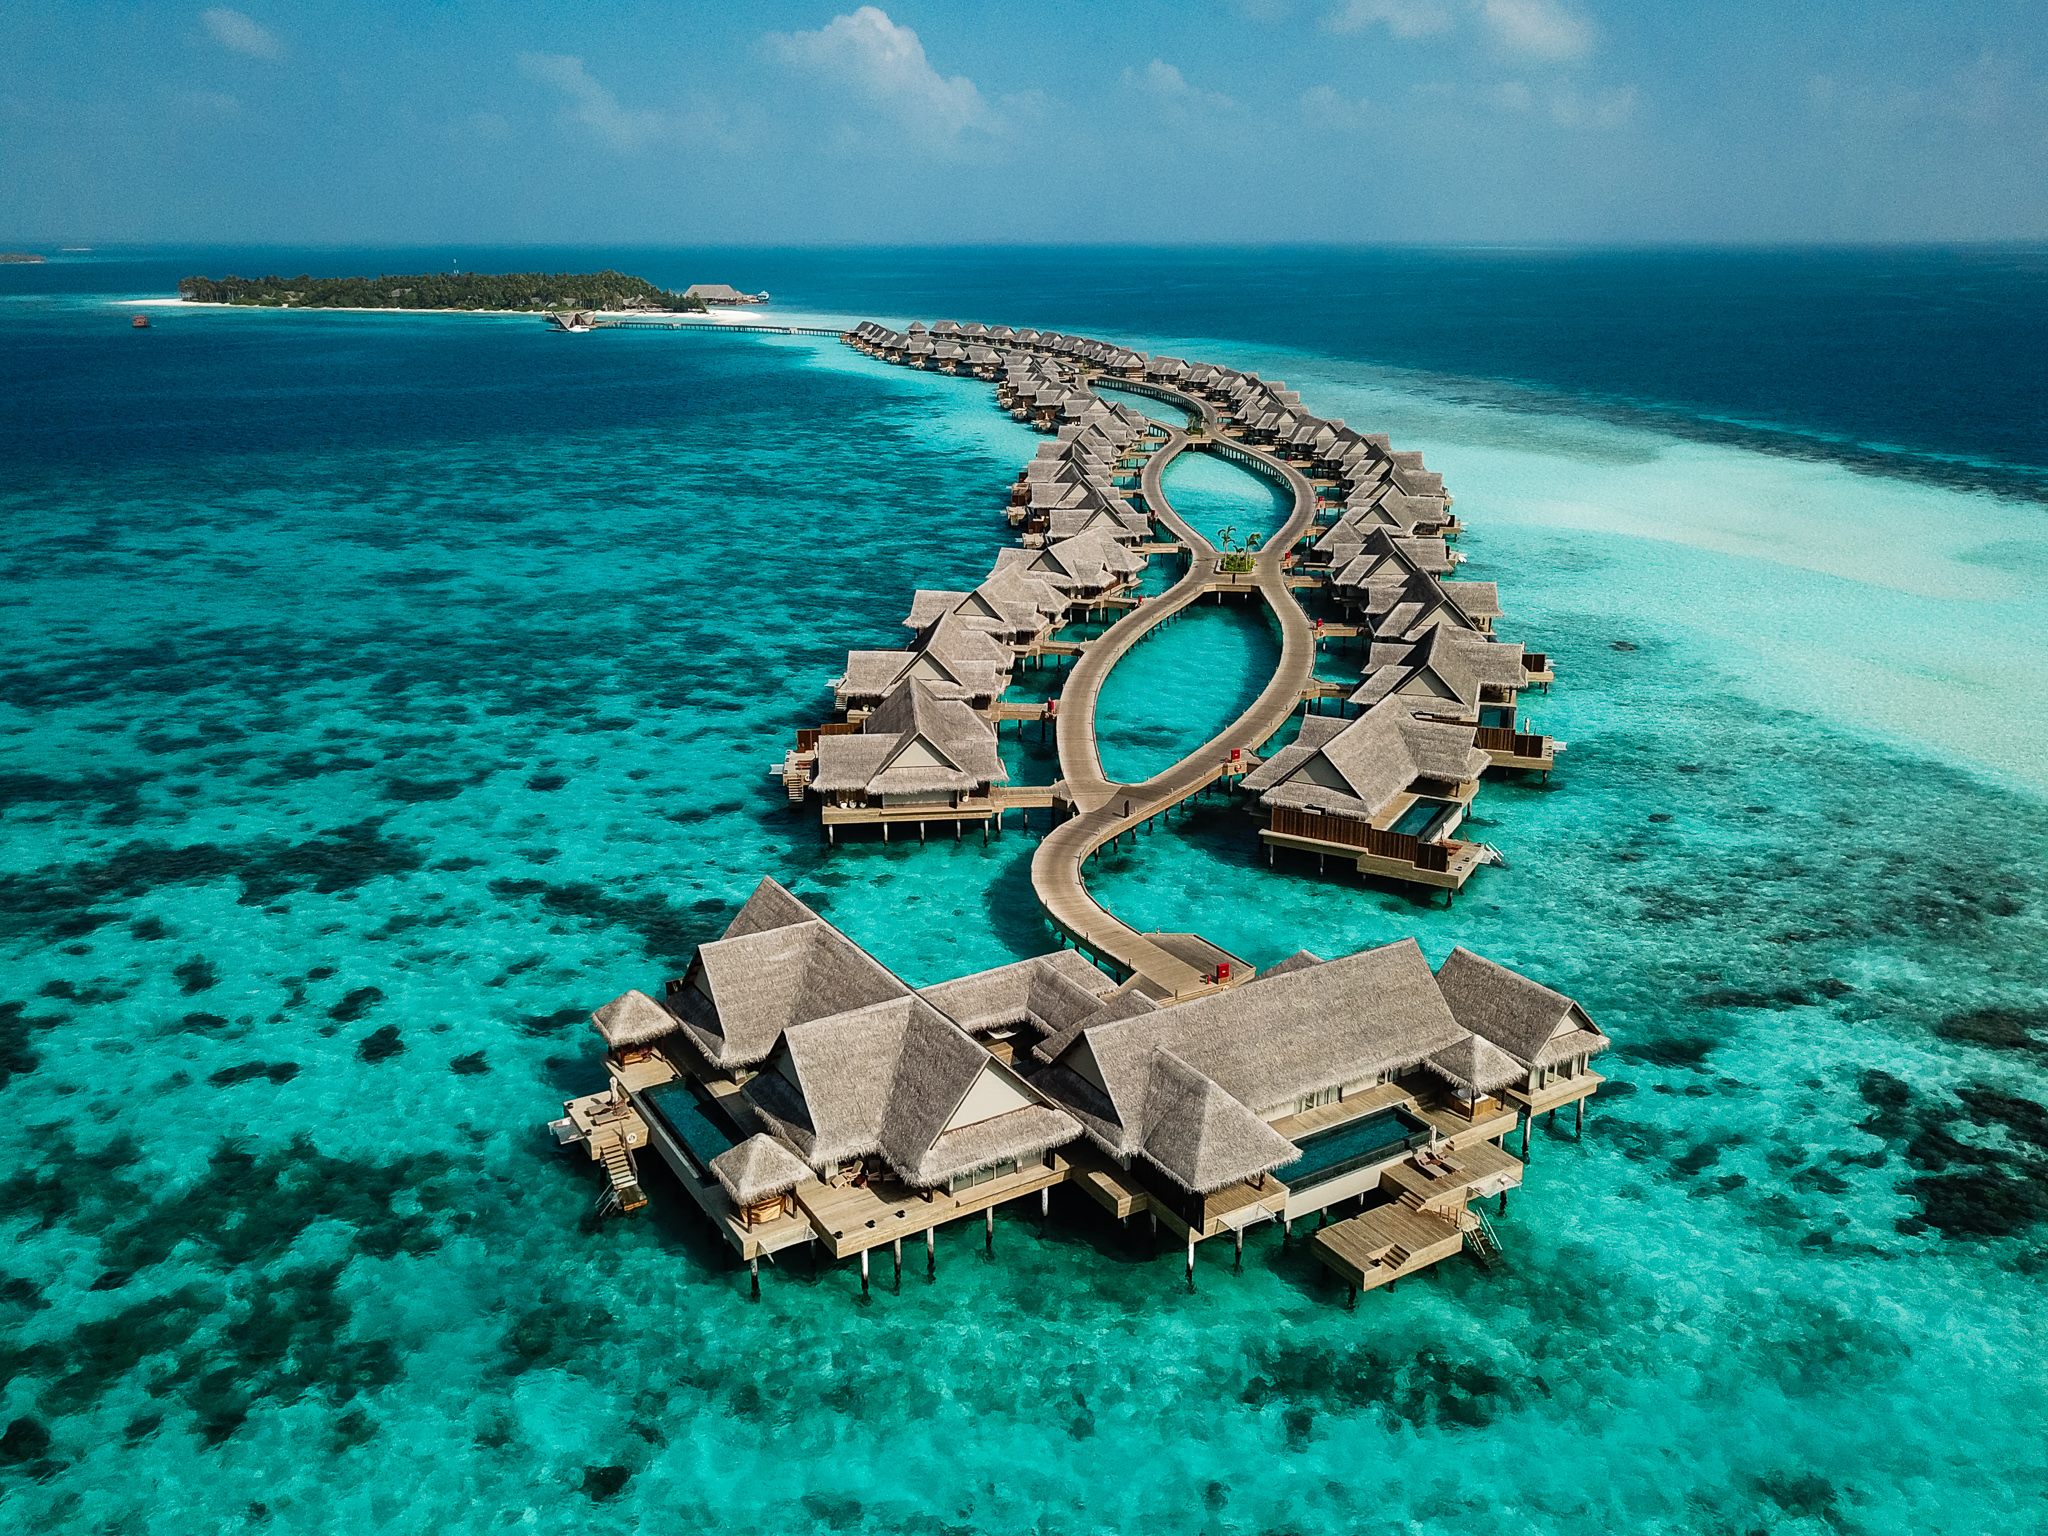 Joali Maldives — michutravel